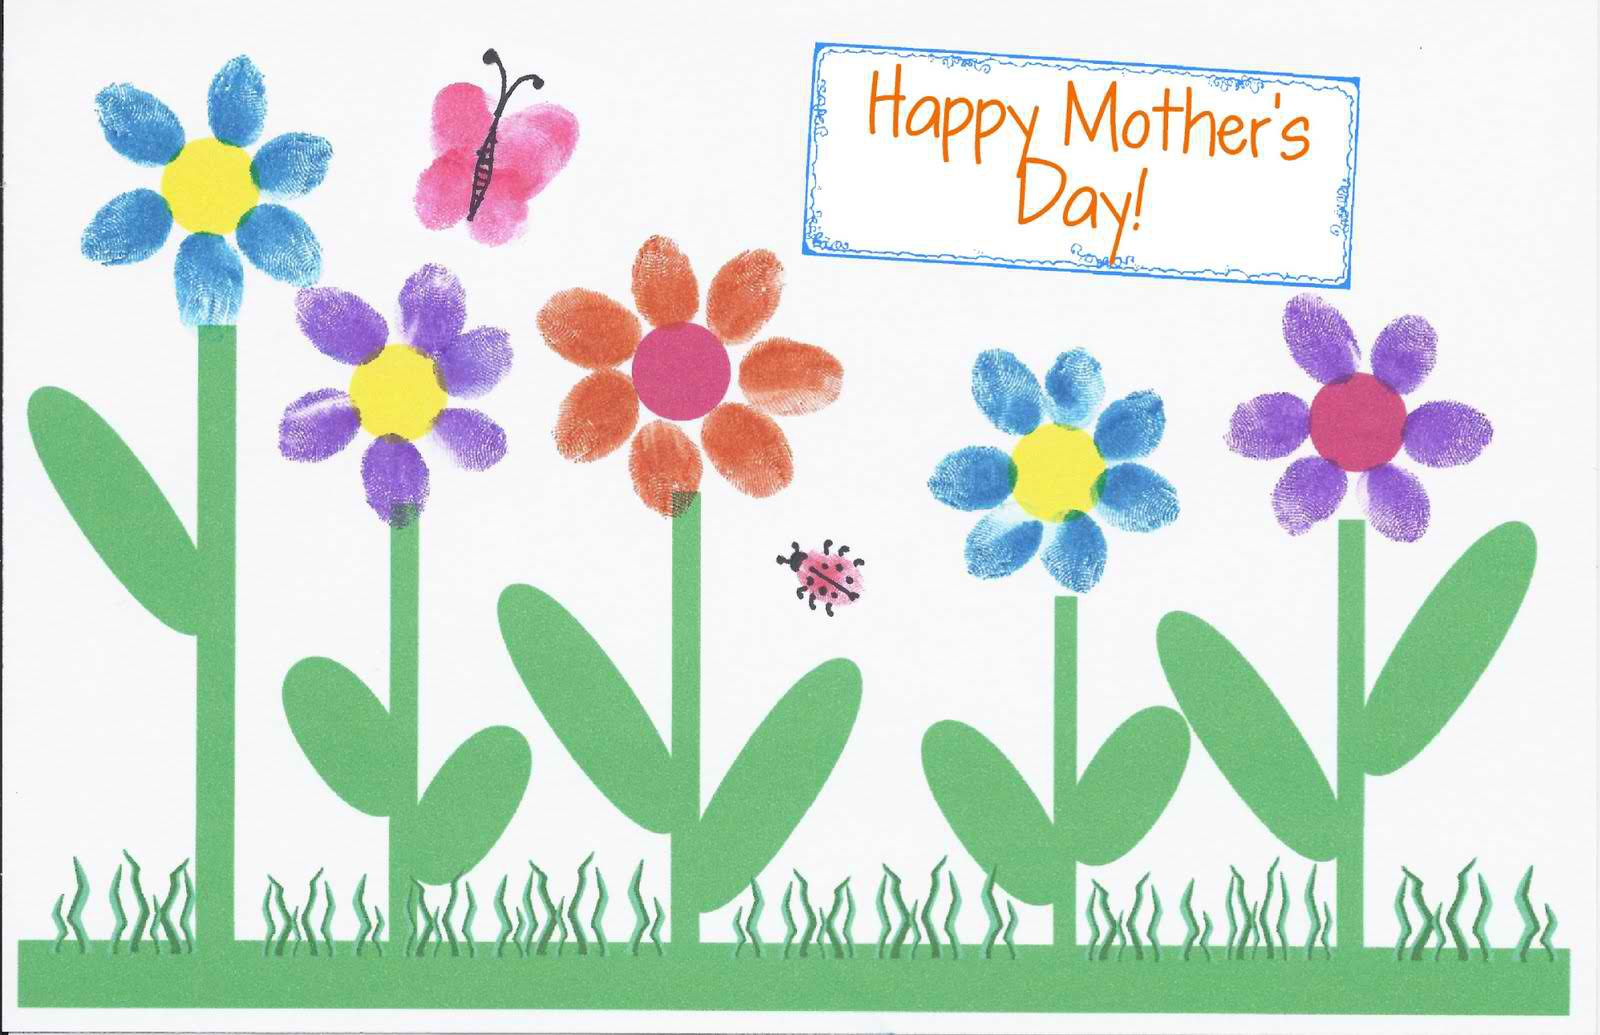 happy mothers in art Page 3 of royalty-free (rf) stock image gallery featuring mothers day clipart illustrations and mothers day cartoons.